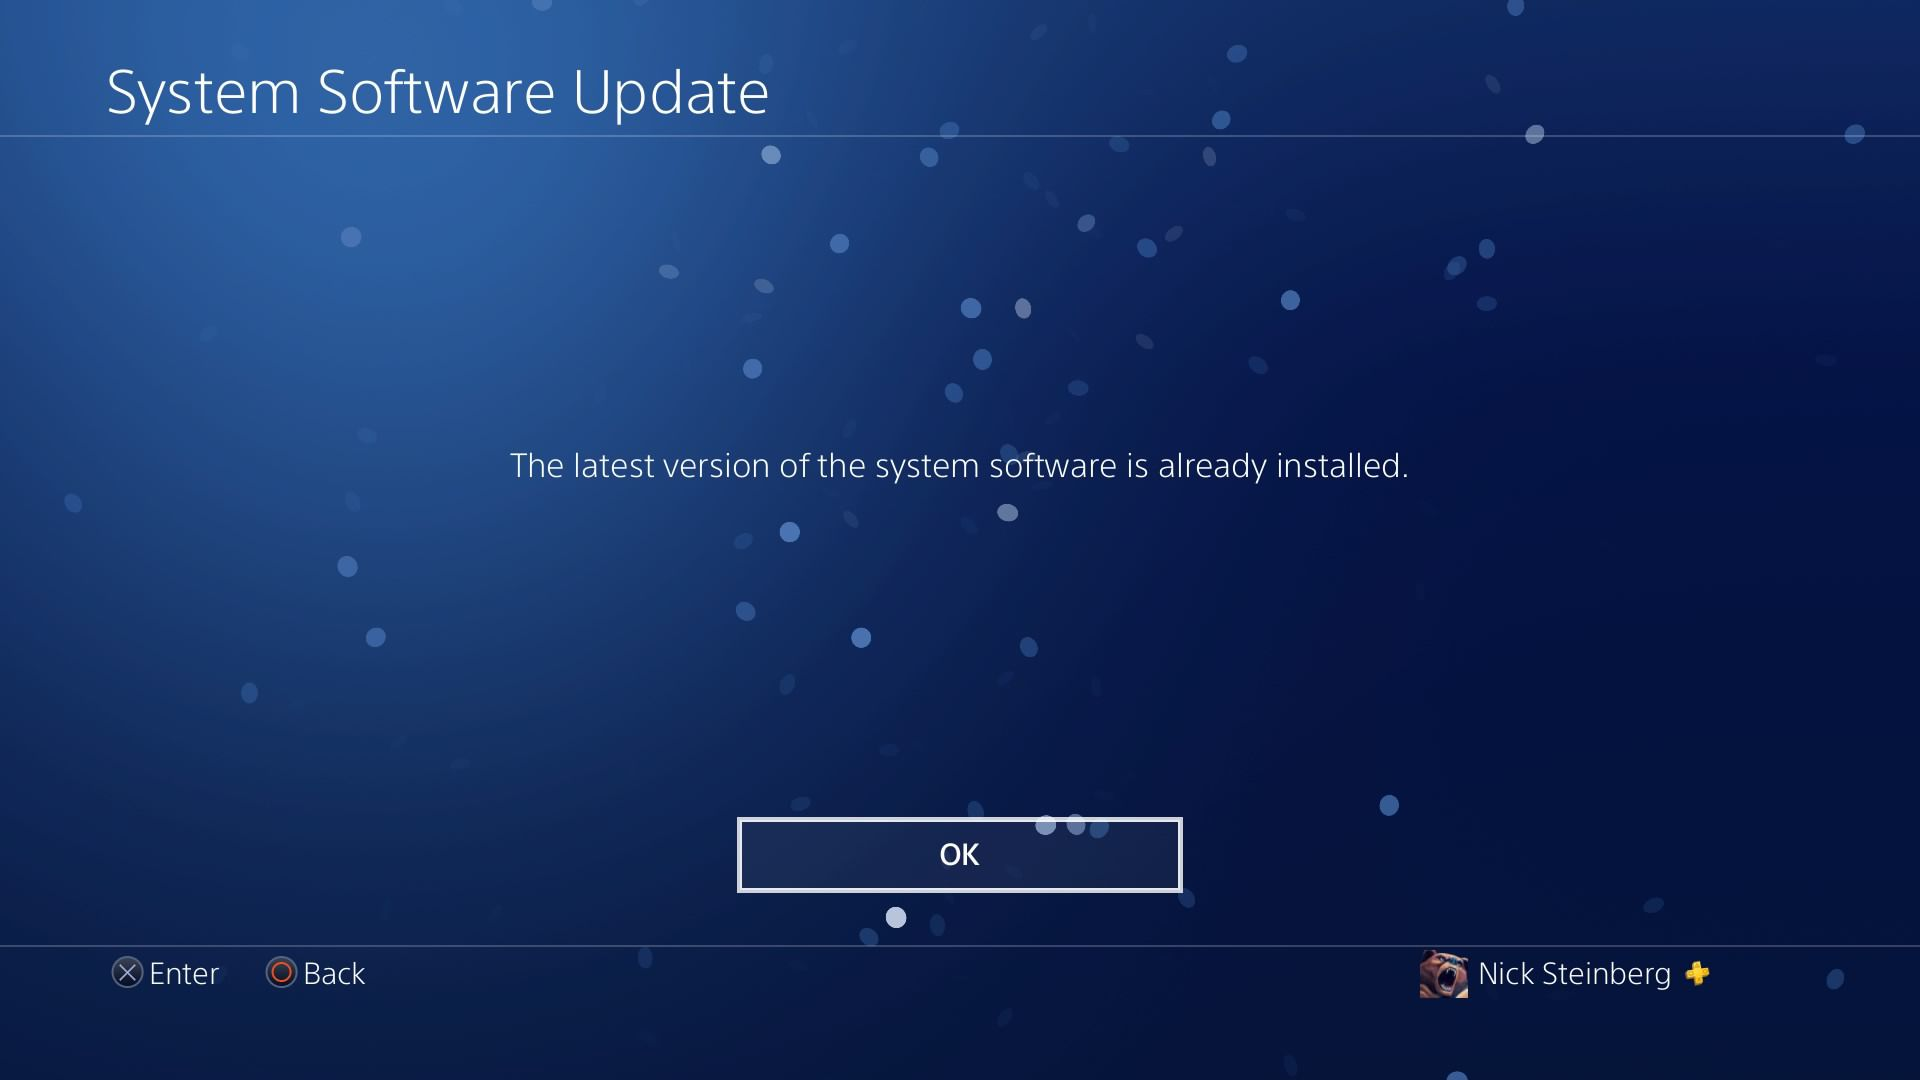 System Software Update screen on PS4.